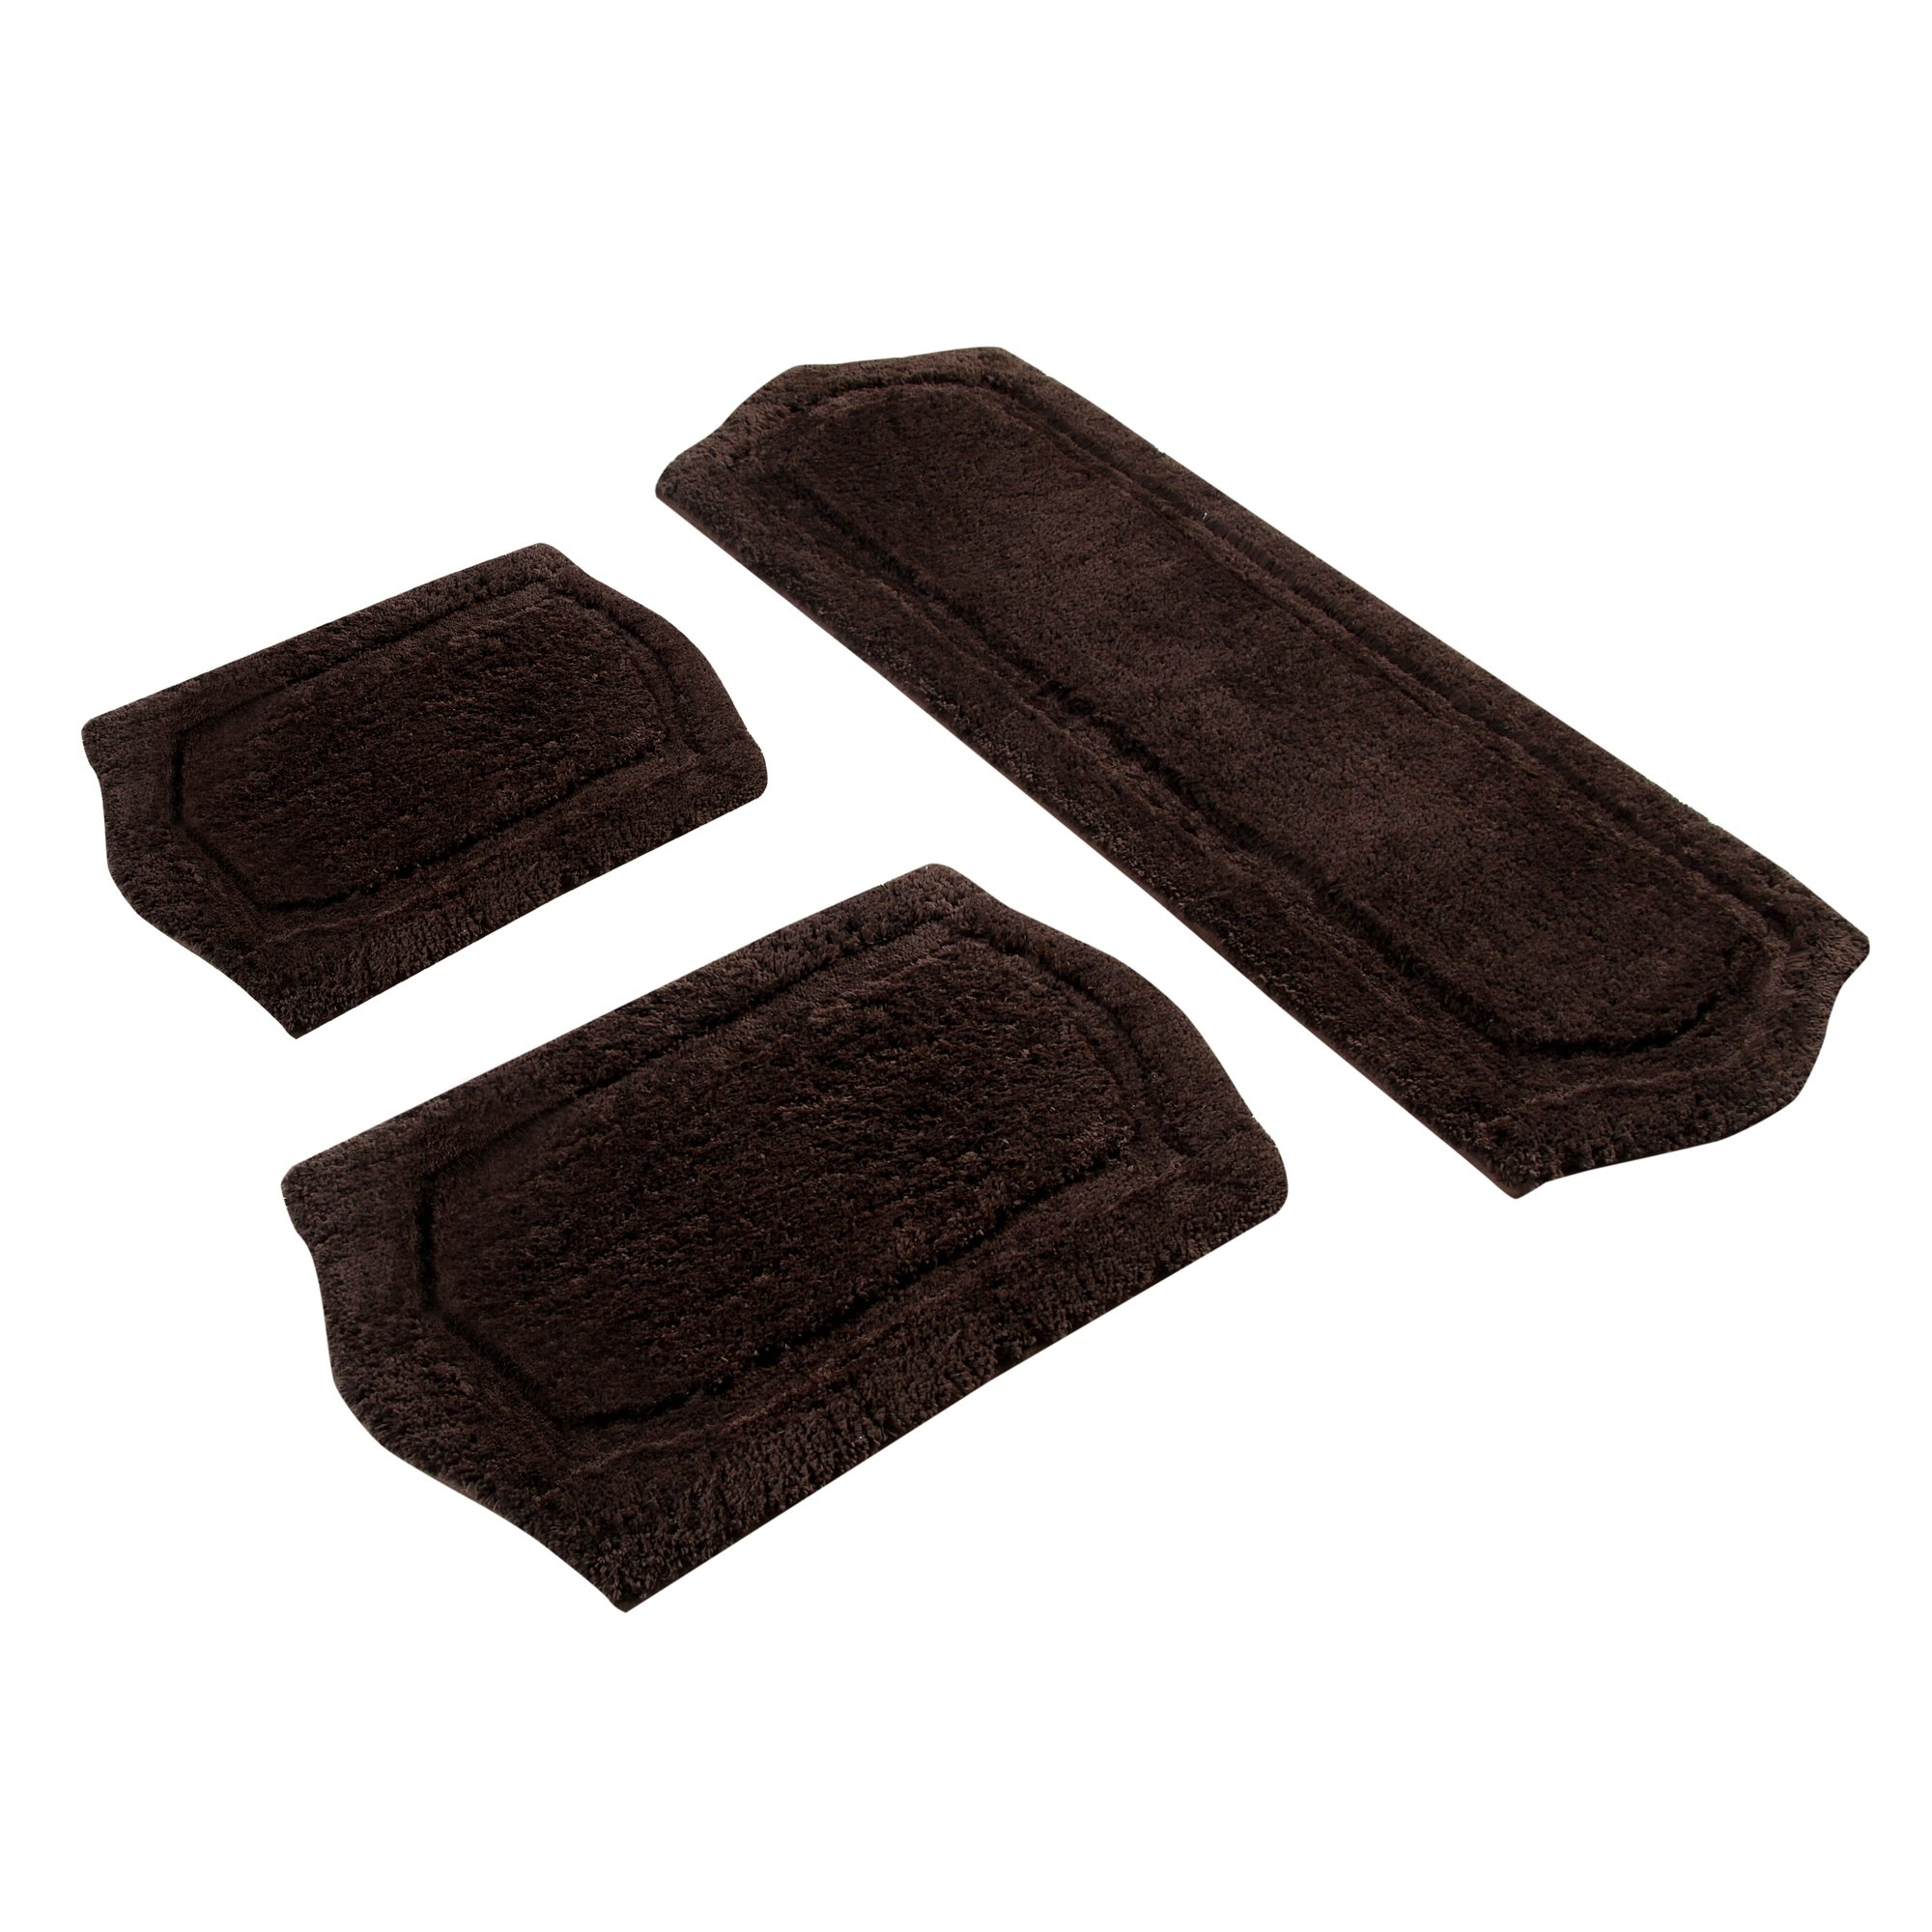 3 Piece Memory Foam Bath Rug Set